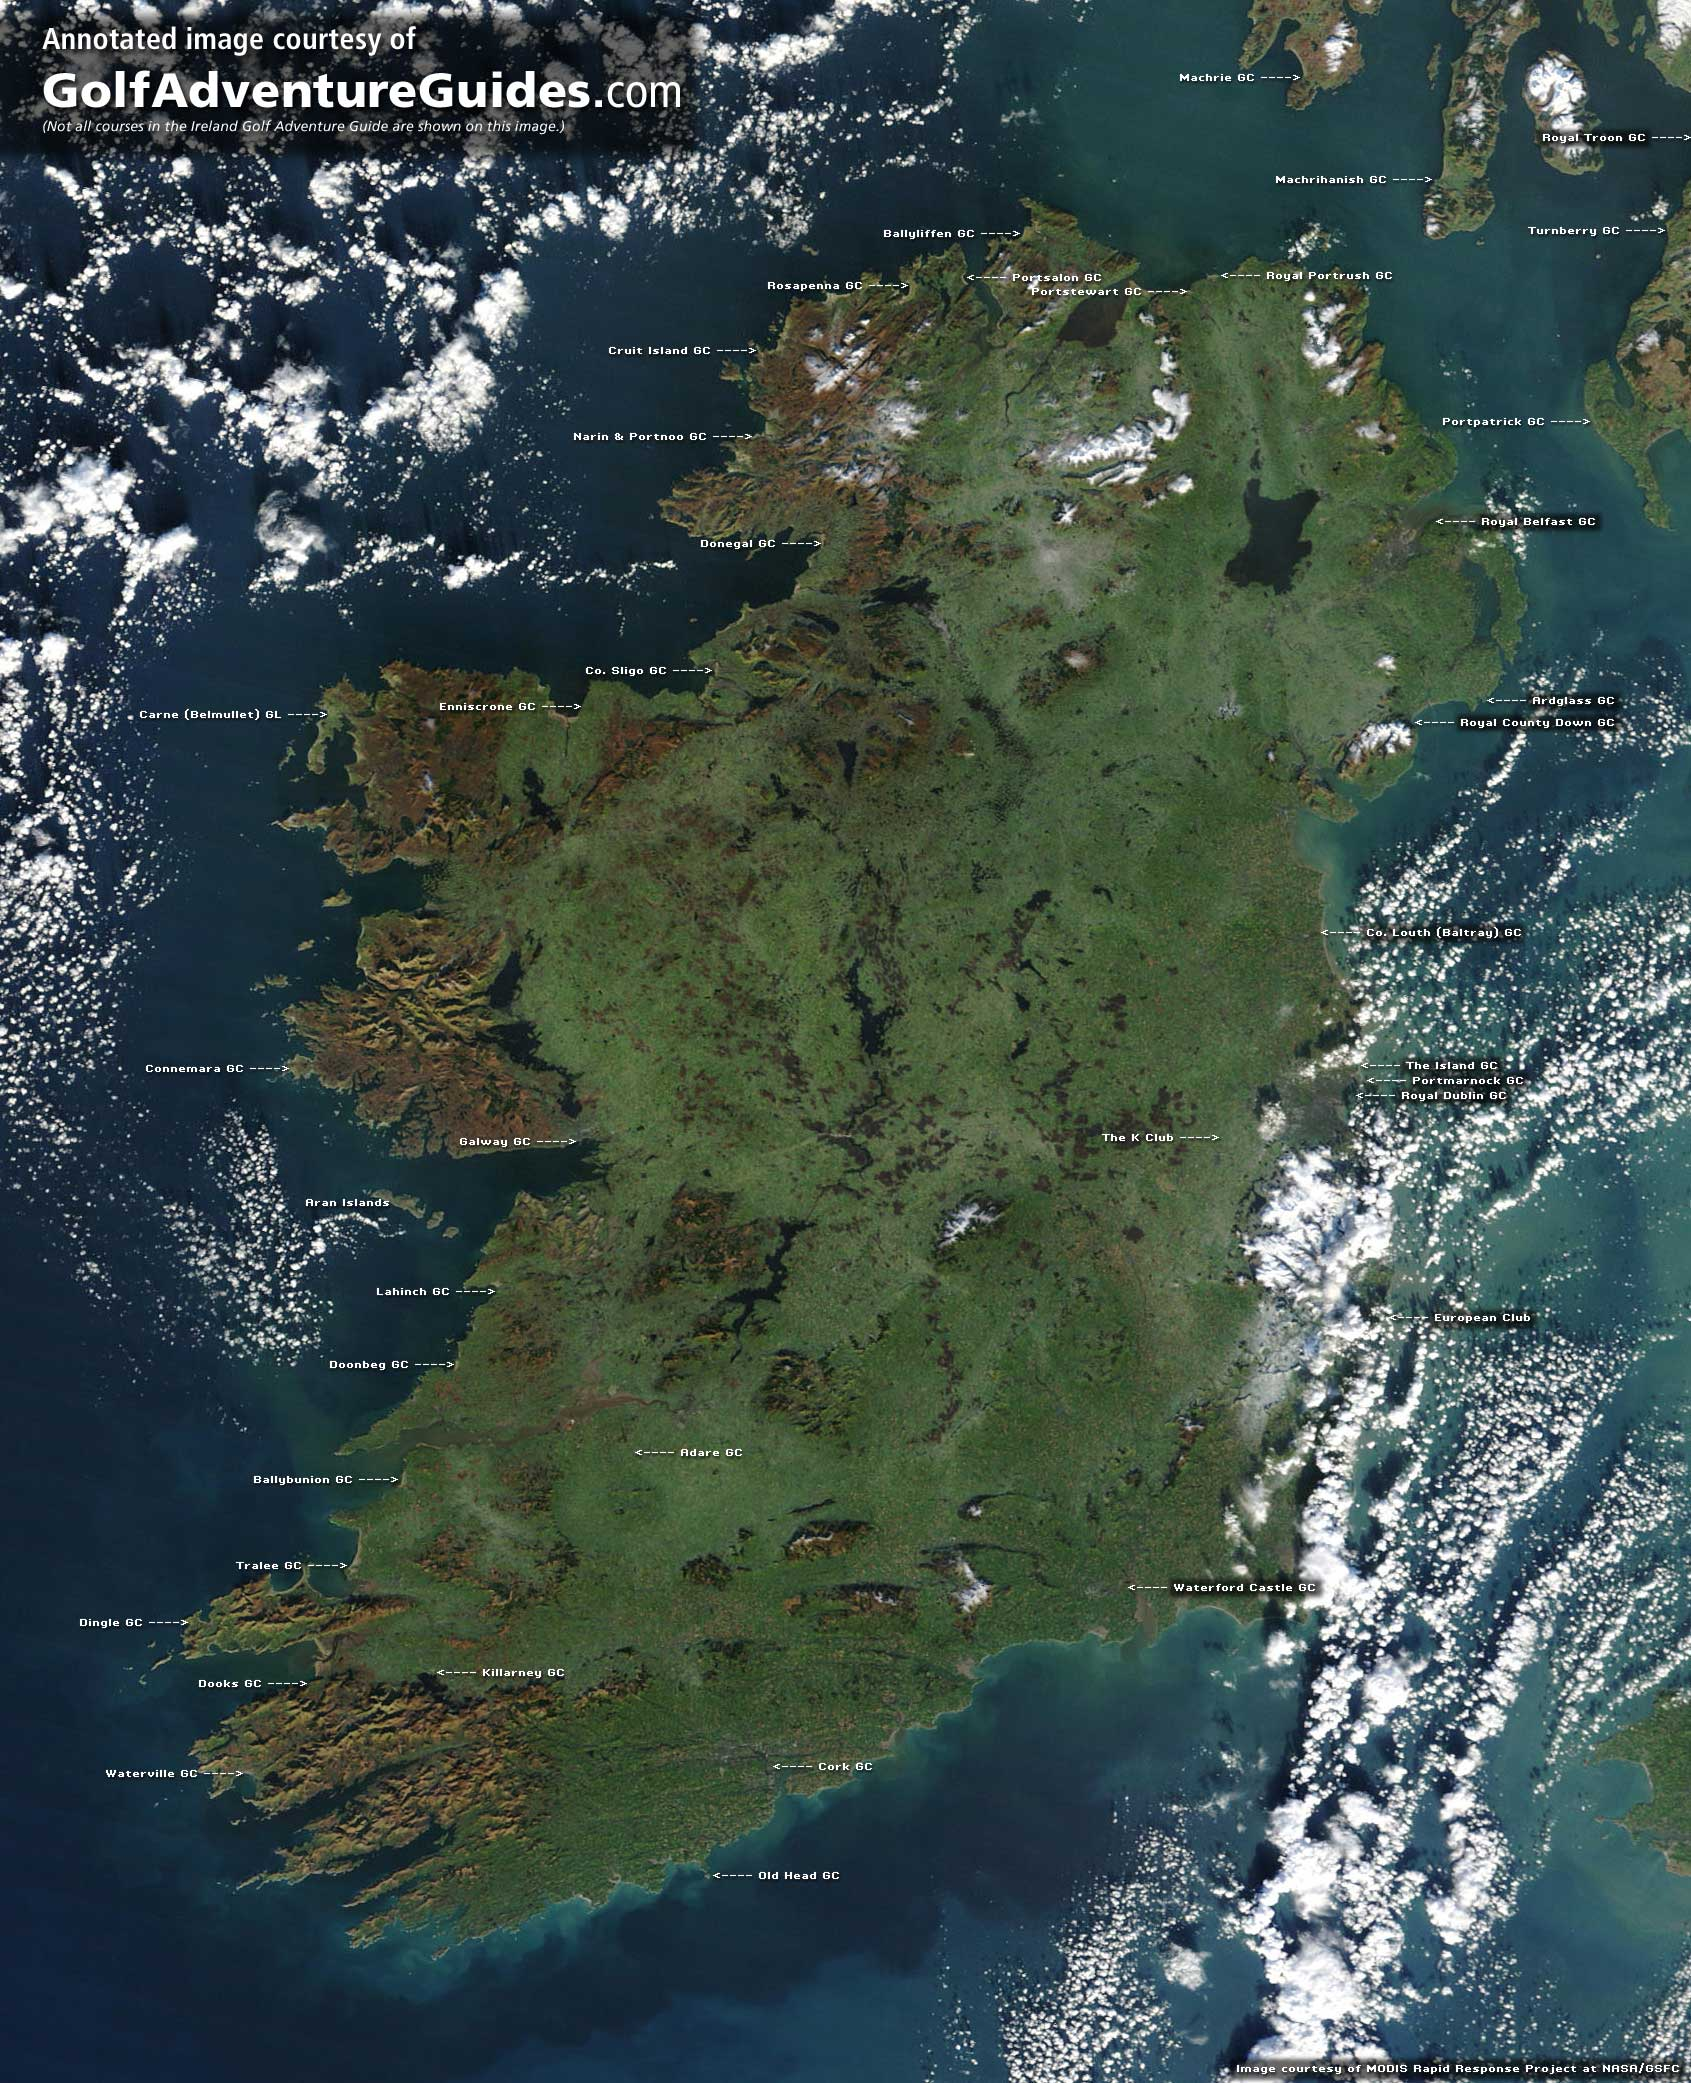 Satellite image of Ireland, annotated with golf course locations.